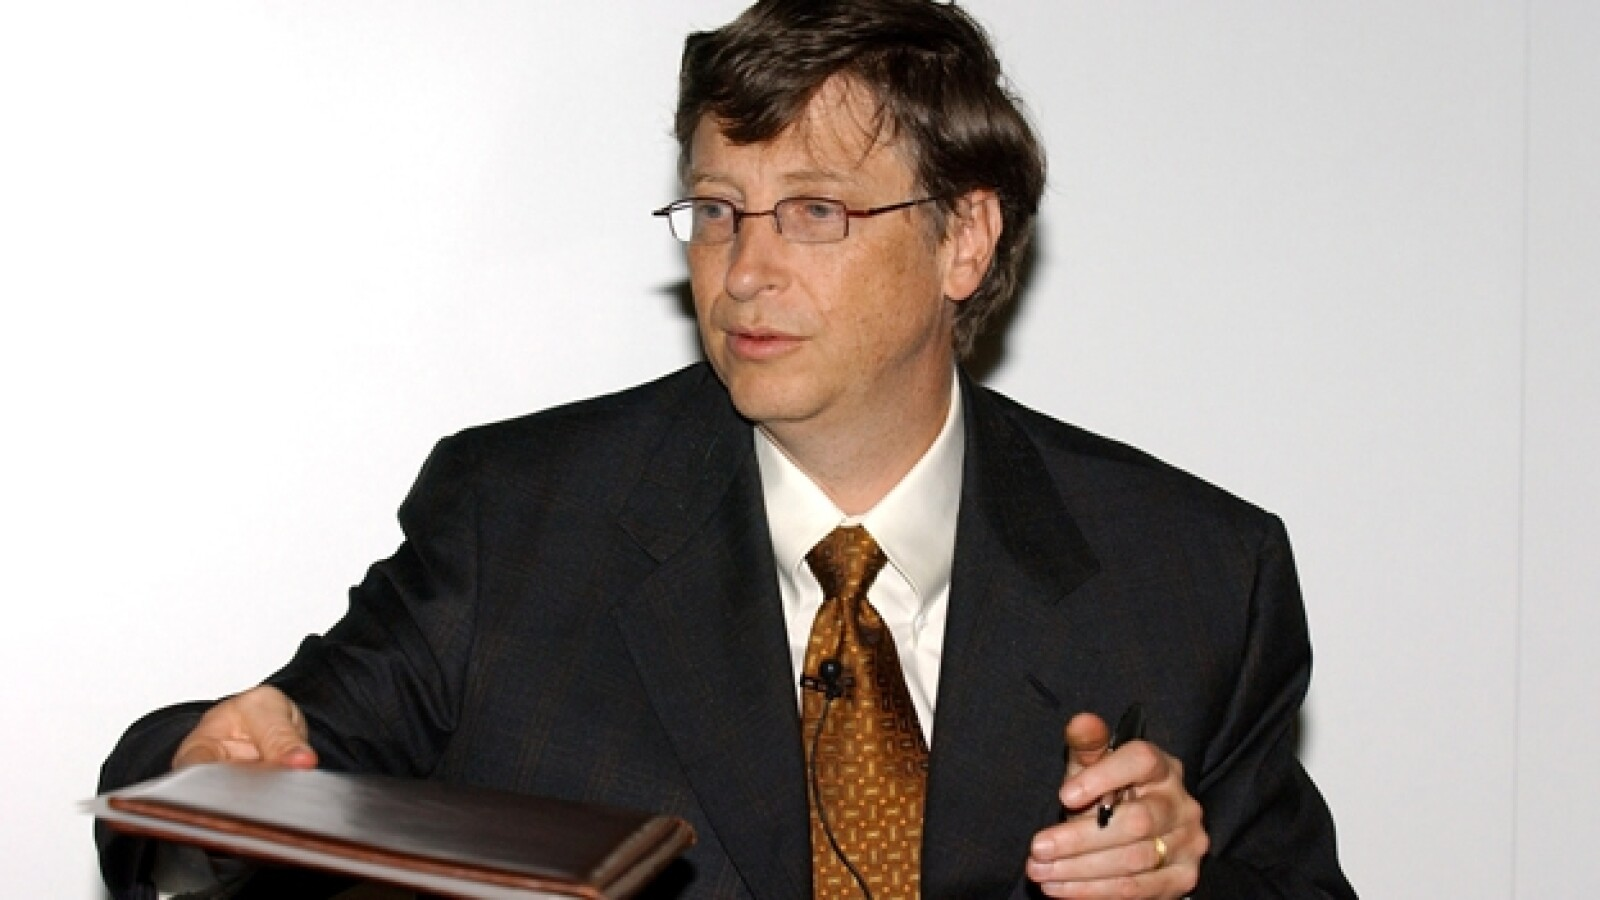 bill gates firma documentos